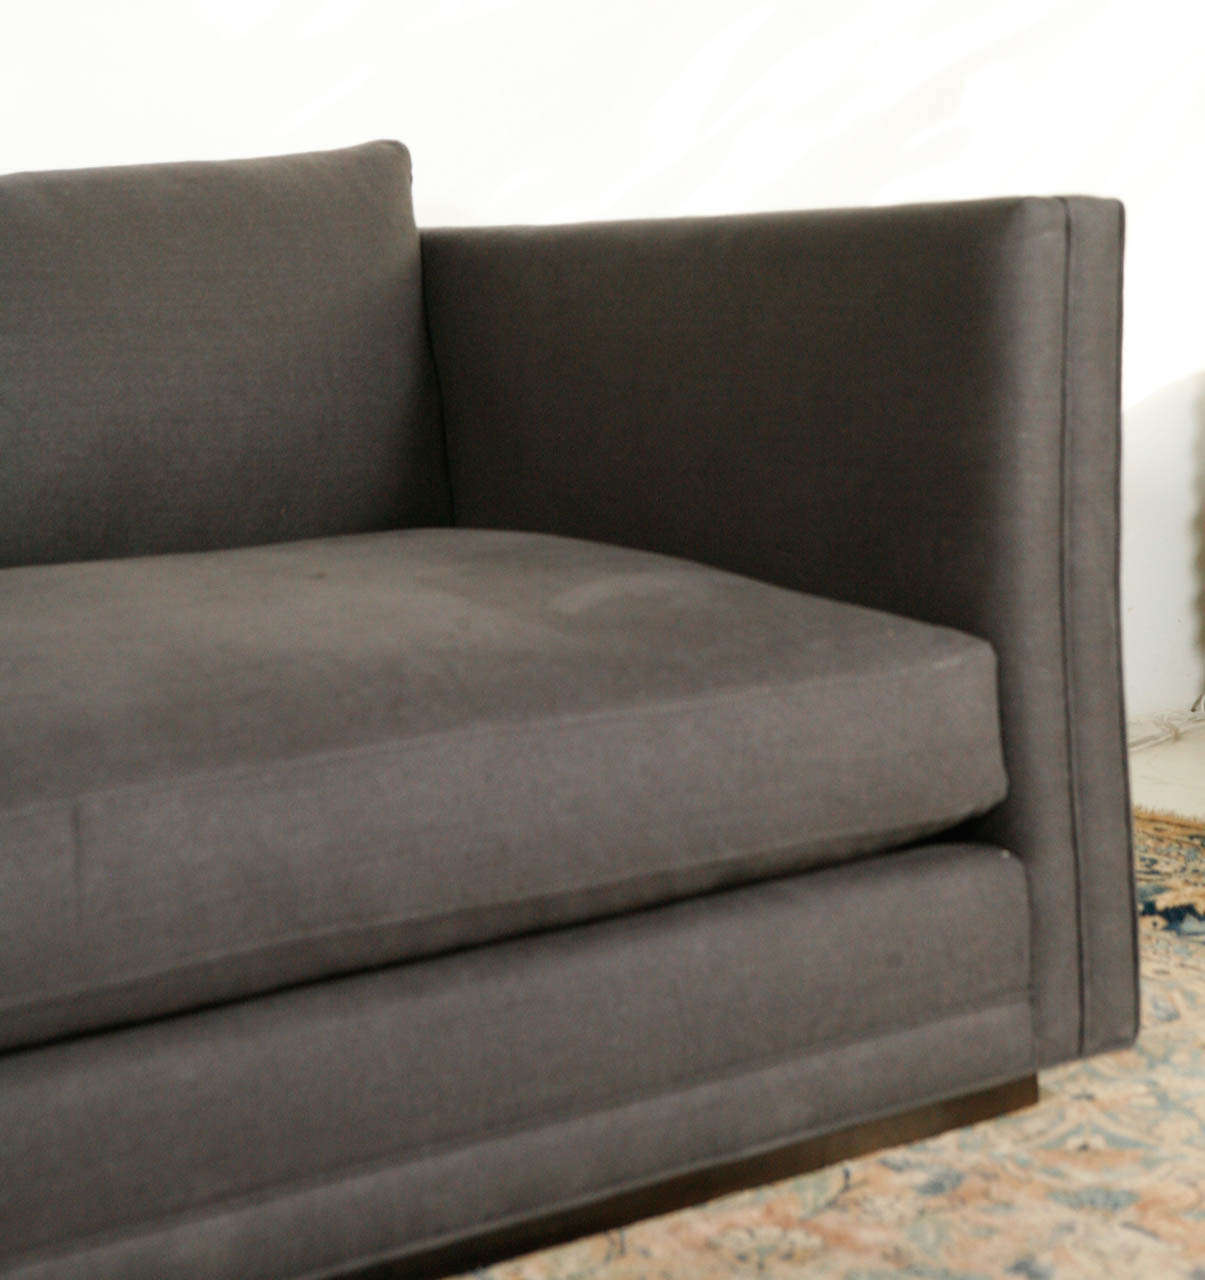 Nk collection modern sofa in grey linen for sale at 1stdibs Modern sofa grey